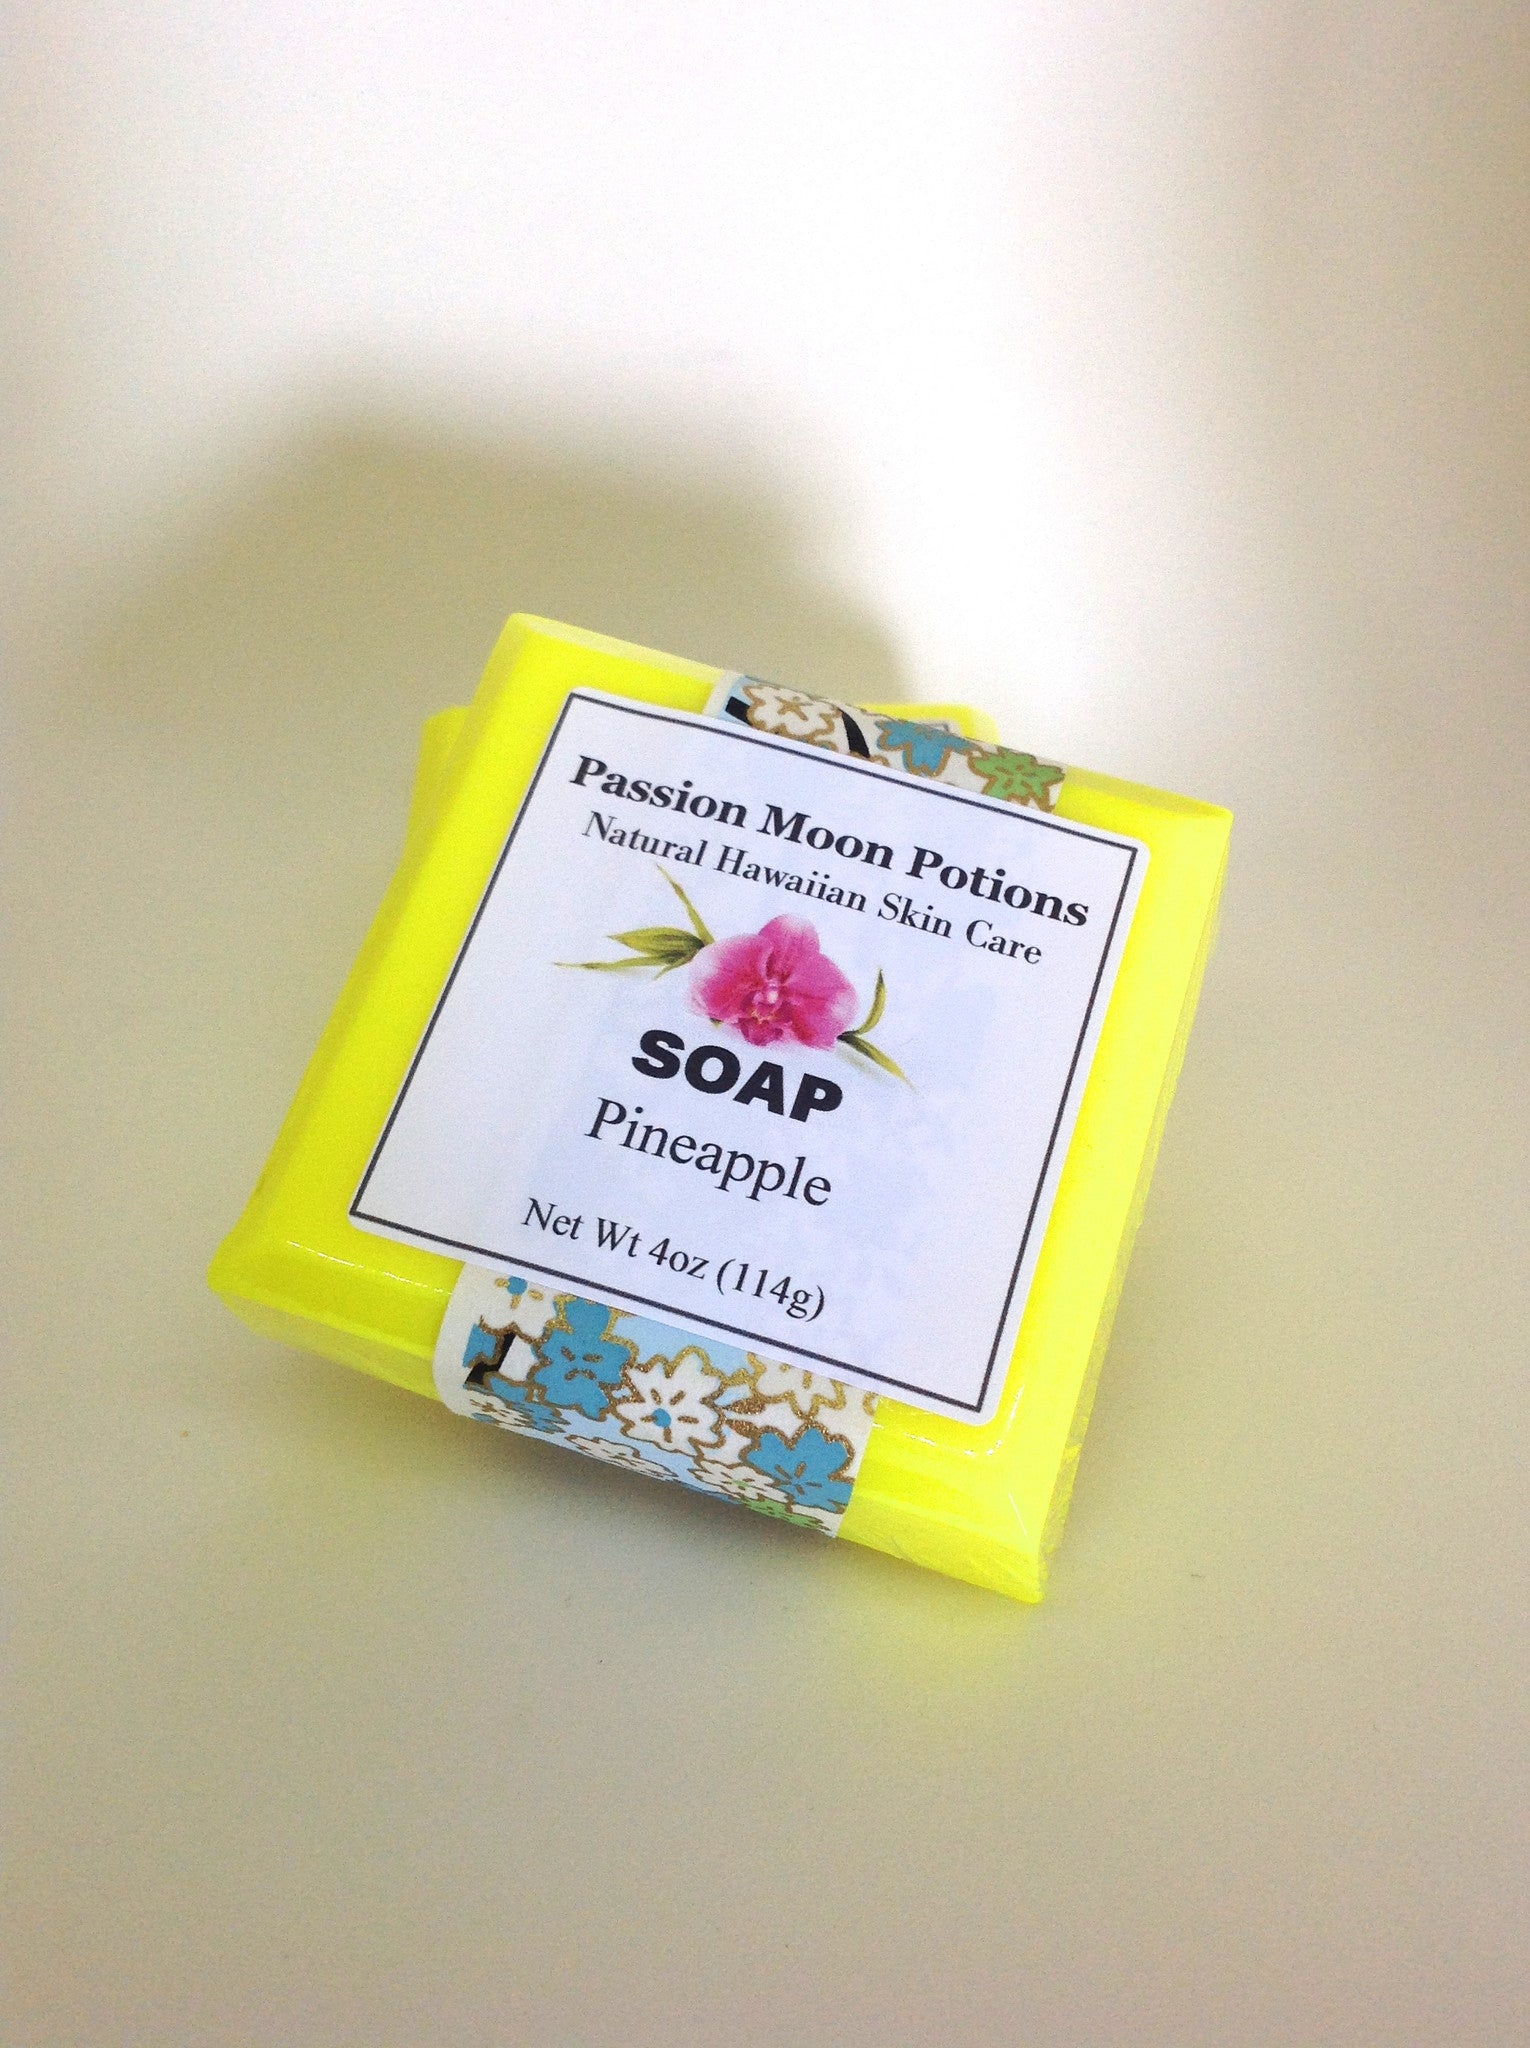 Pineapple Soap - Passion Moon Potions - 2